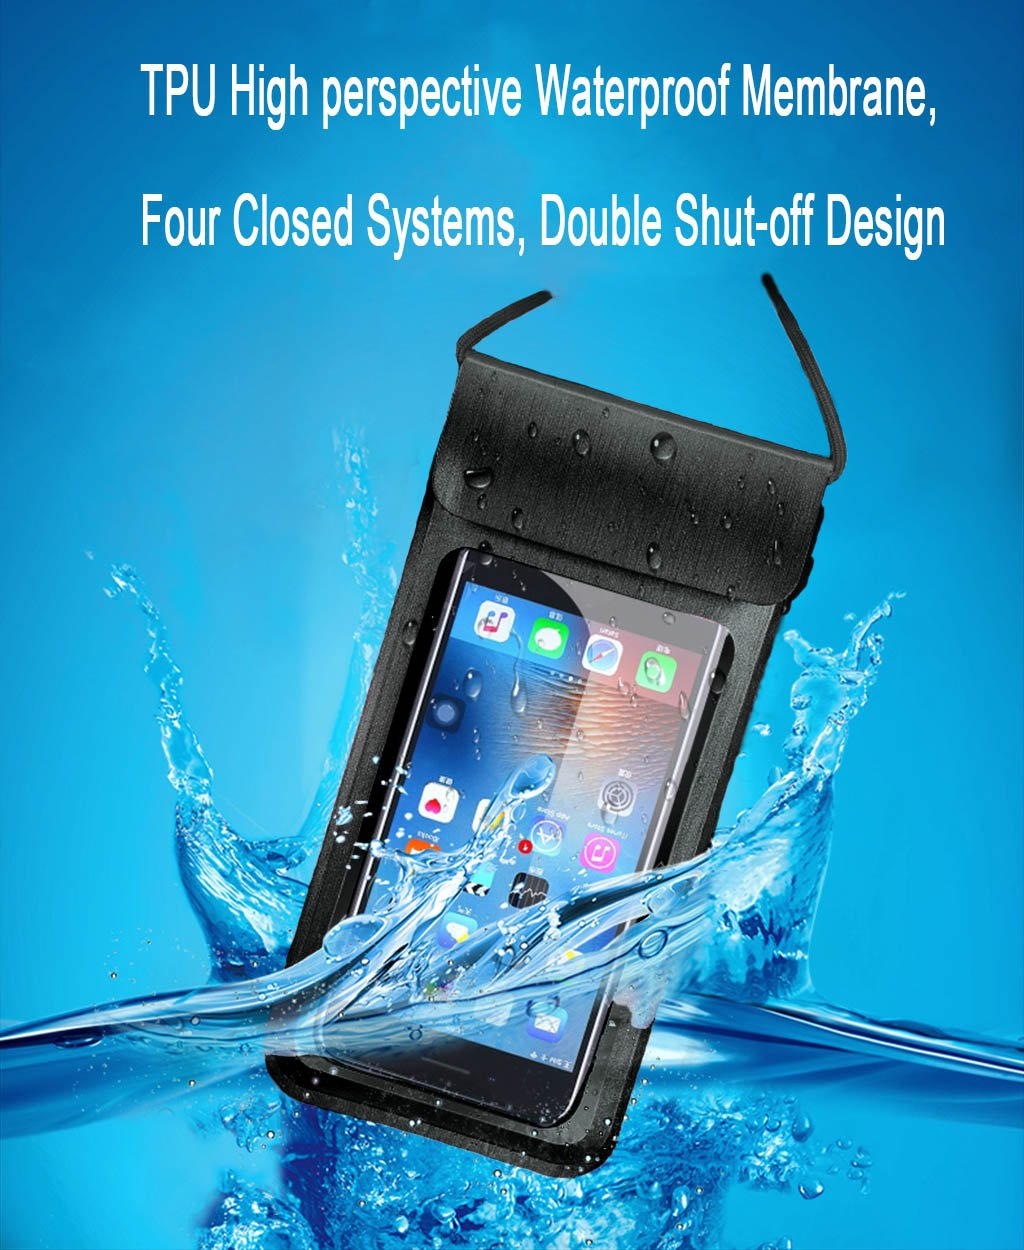 Amazon.com: Waterproof Case, Universal IPX8 Waterproof Phone Pouch Underwater Phone Case Dry Bag for iPhone X/8/8P/7/7P, Samsung Galaxy S9/S9P/S8/S8P/Note 8 ...